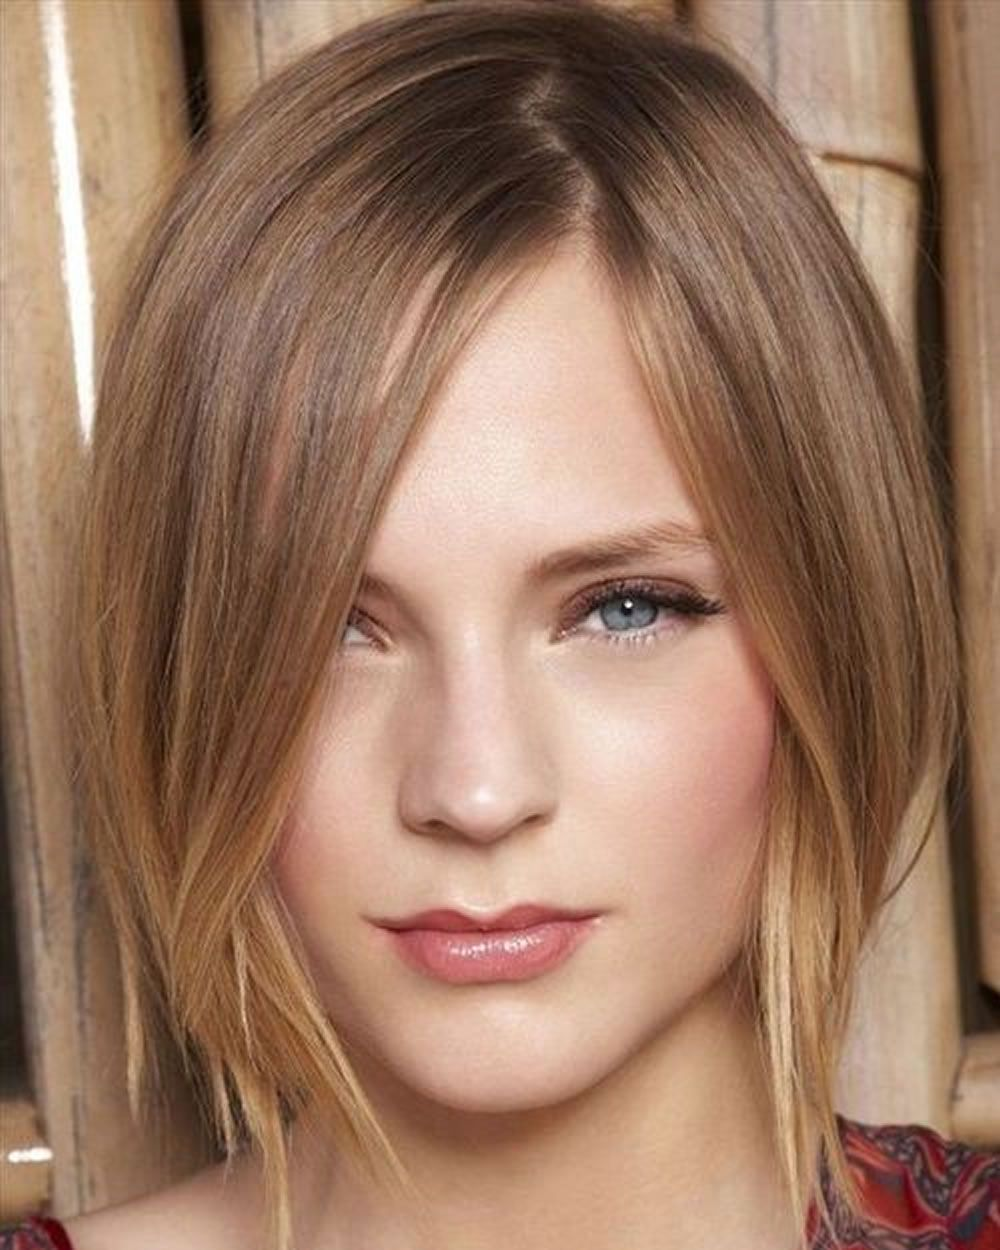 Shoulder Length Hair Ideas For Thin Hair Shoulder Length Hair Ideas For Thin Hair In 20 Thin Hair Haircuts Thin Hair Short Haircuts Hairstyles For Thin Hair